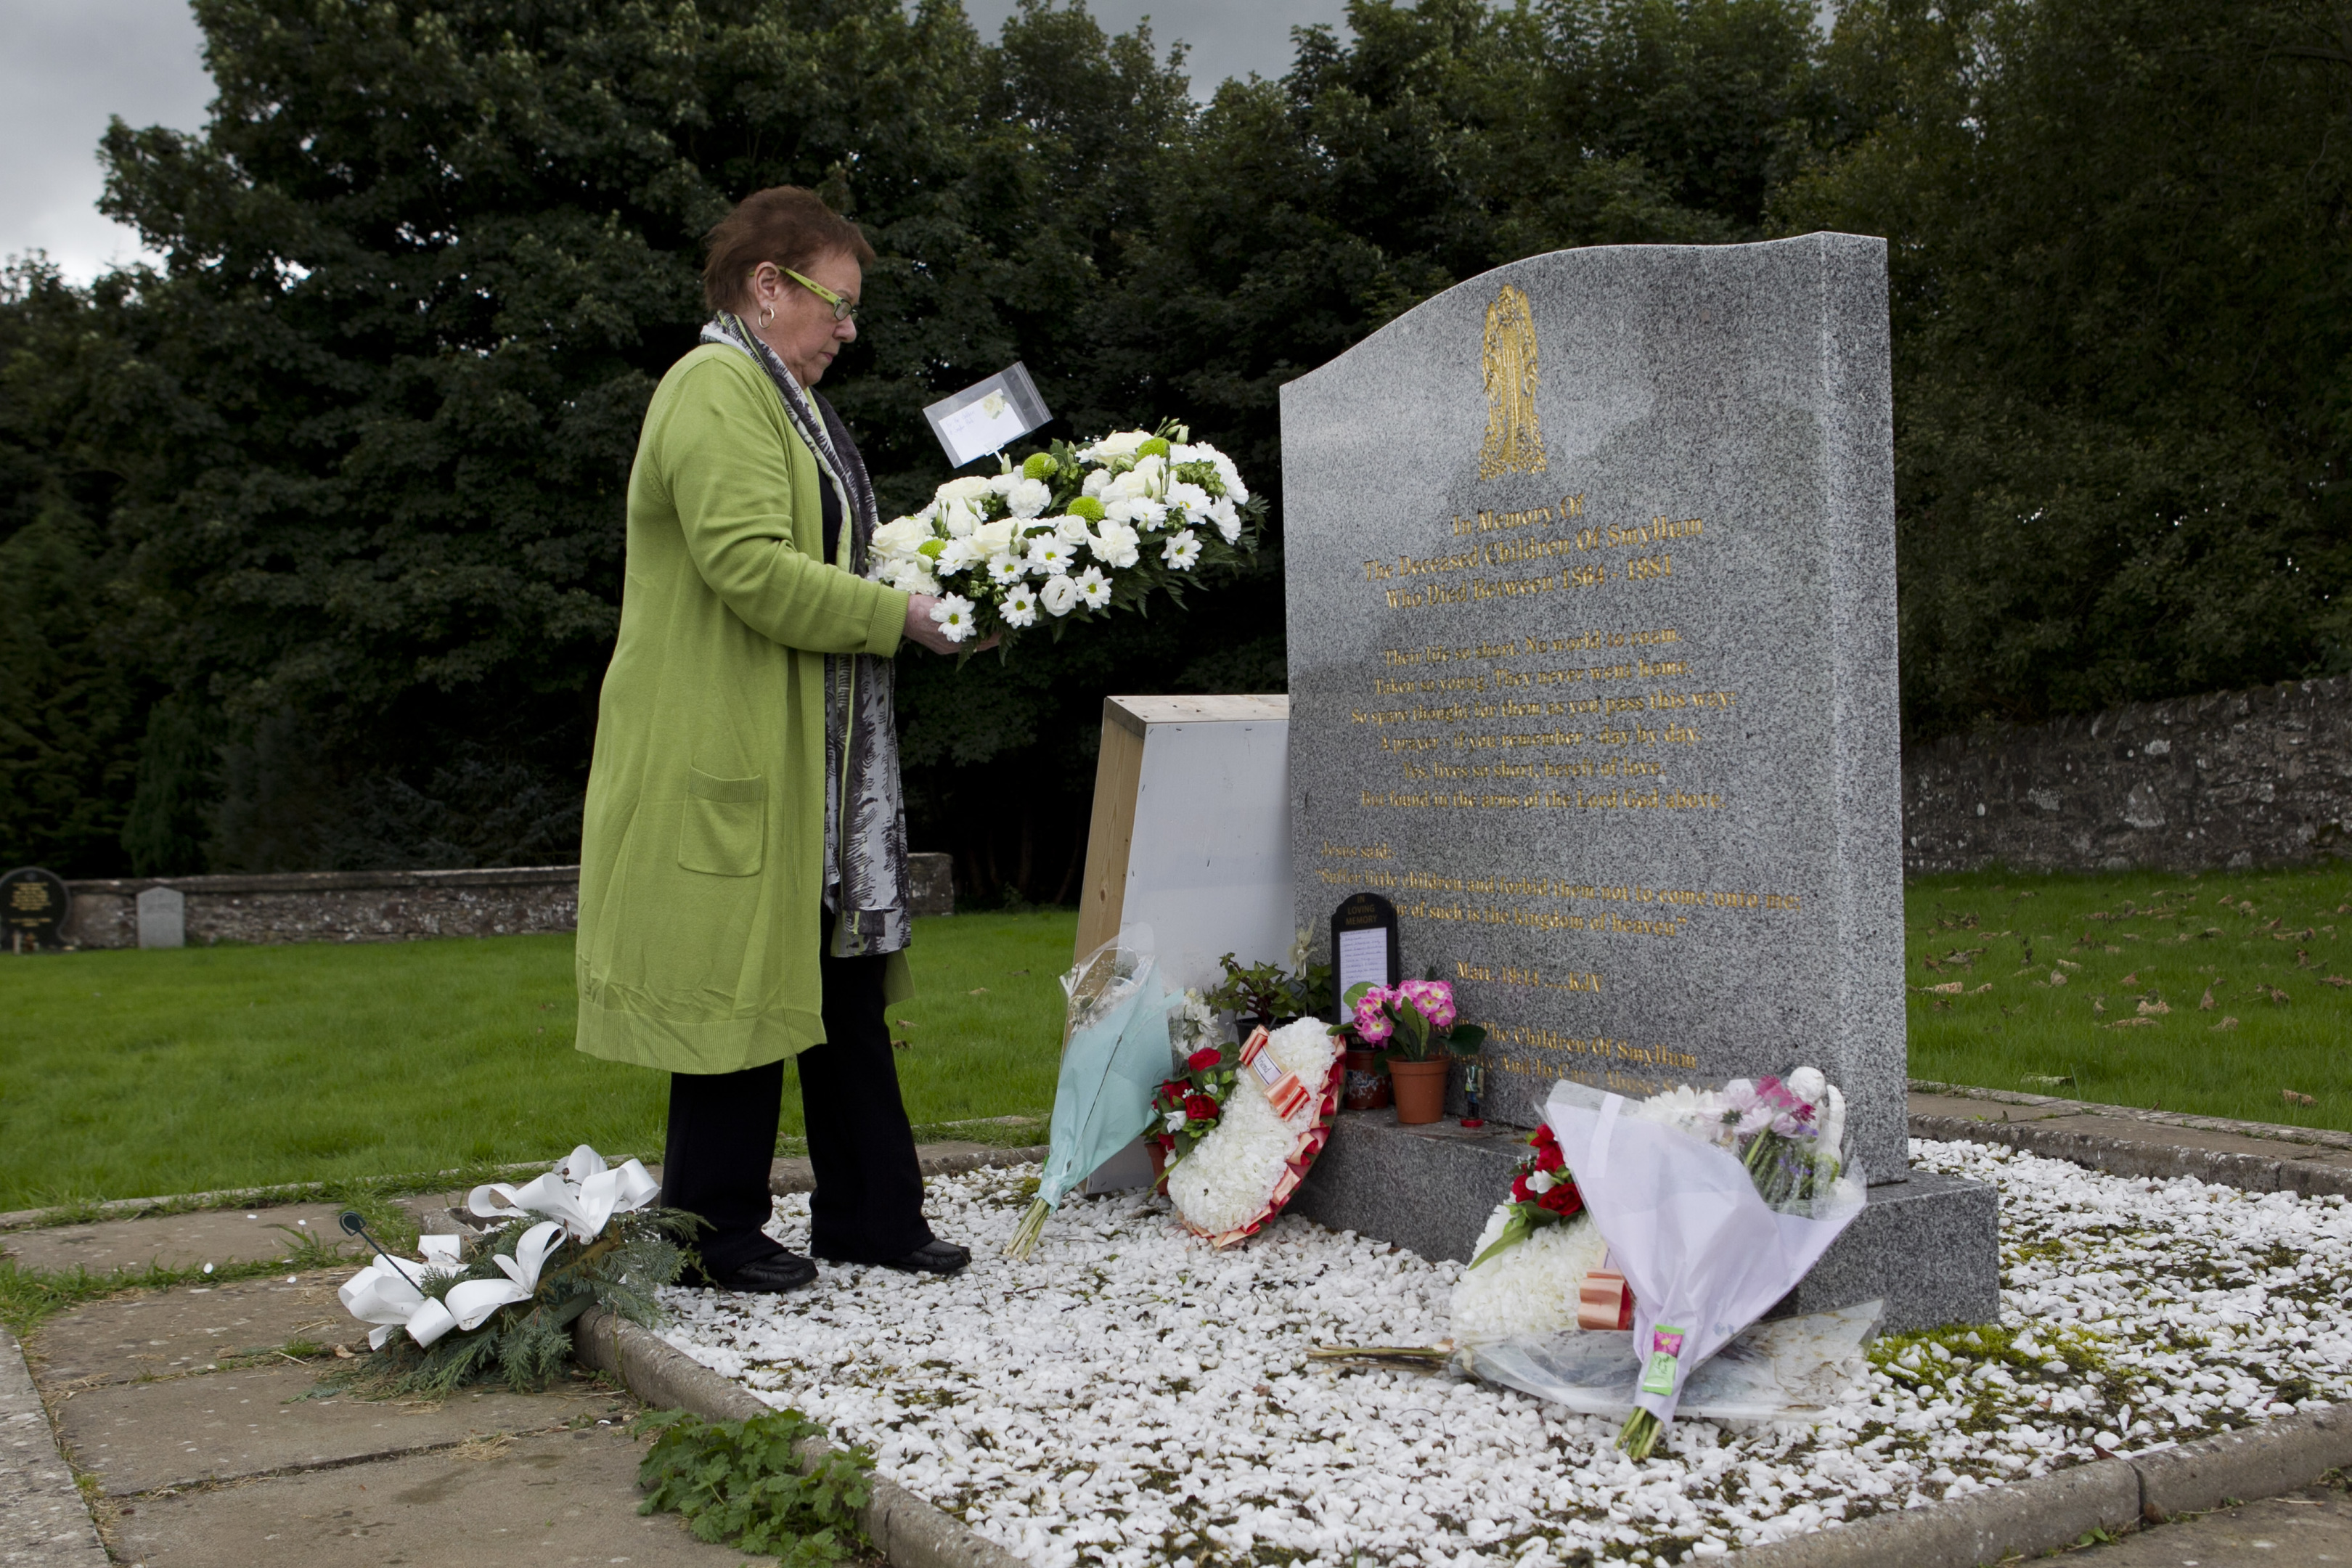 Former Smyllum resident Josie Drage-Dawes laying a wreath at the headstone for the children who died at Smyllum Park Orphange (Andrew Cawley / DC Thomson)